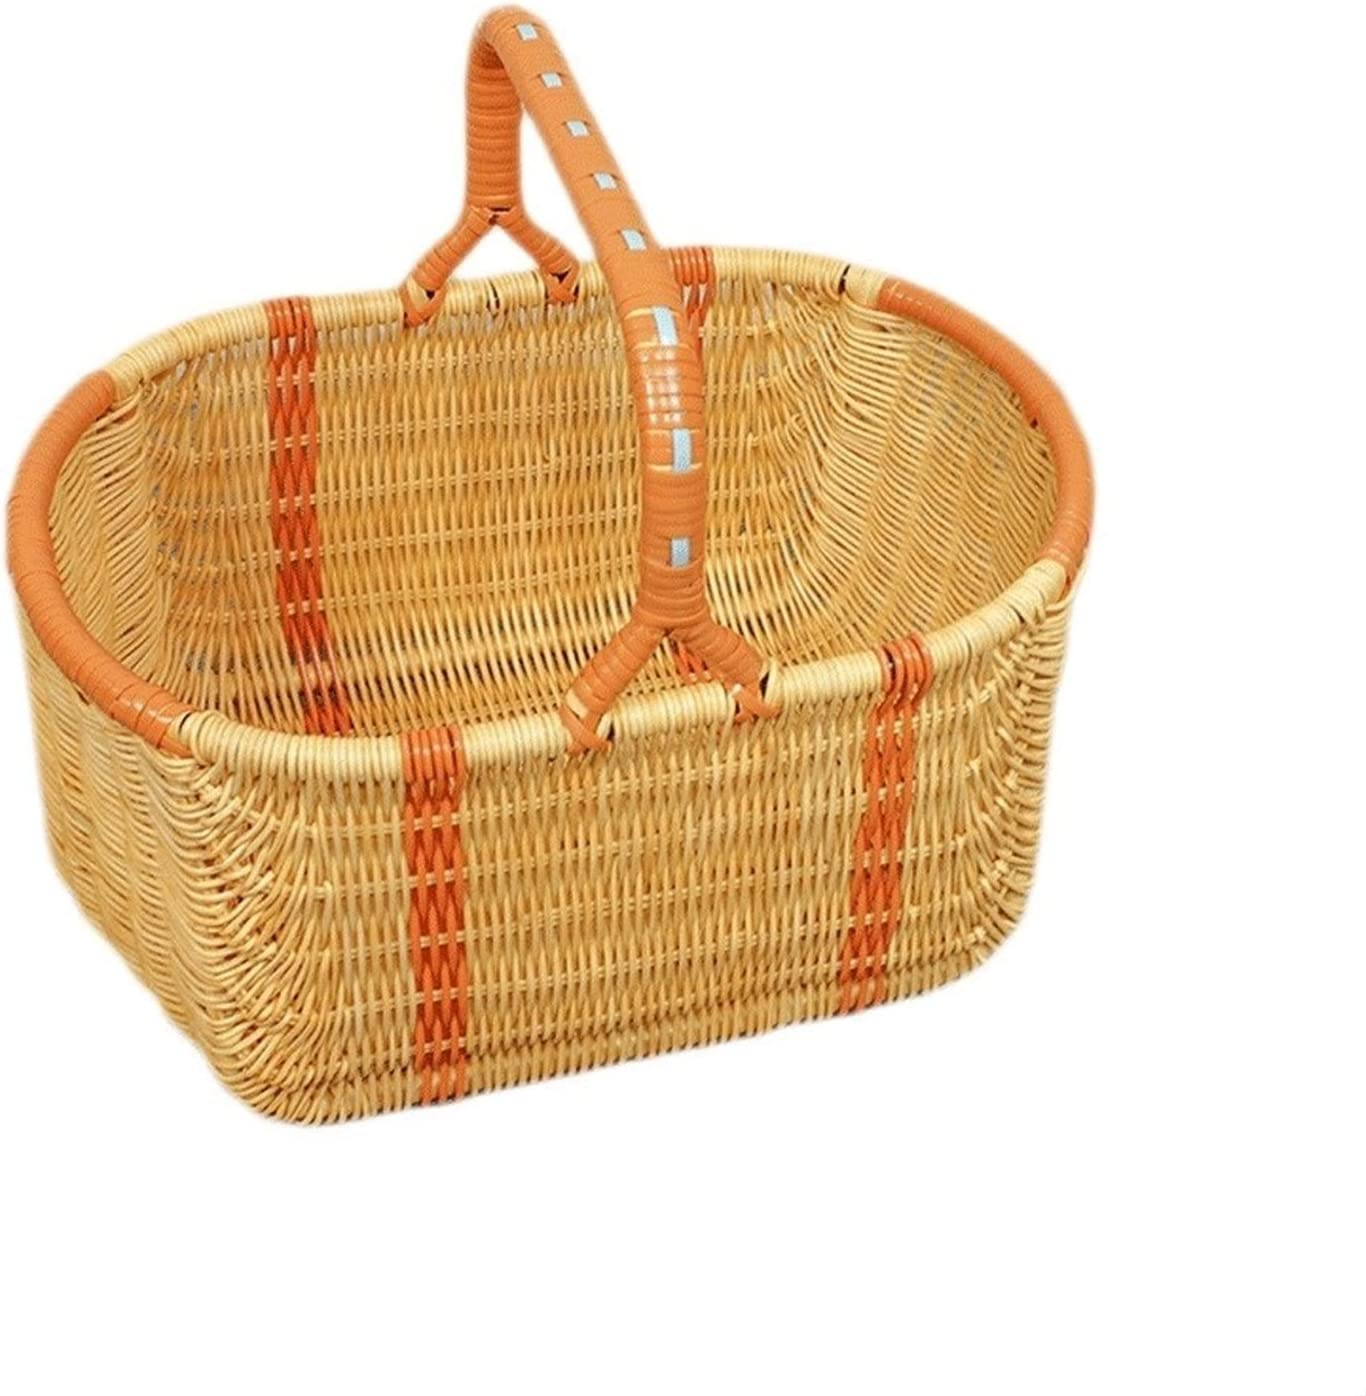 PIAOLING Outdoor Large New item Capacity Ba Picnic Purchase Portable Basket